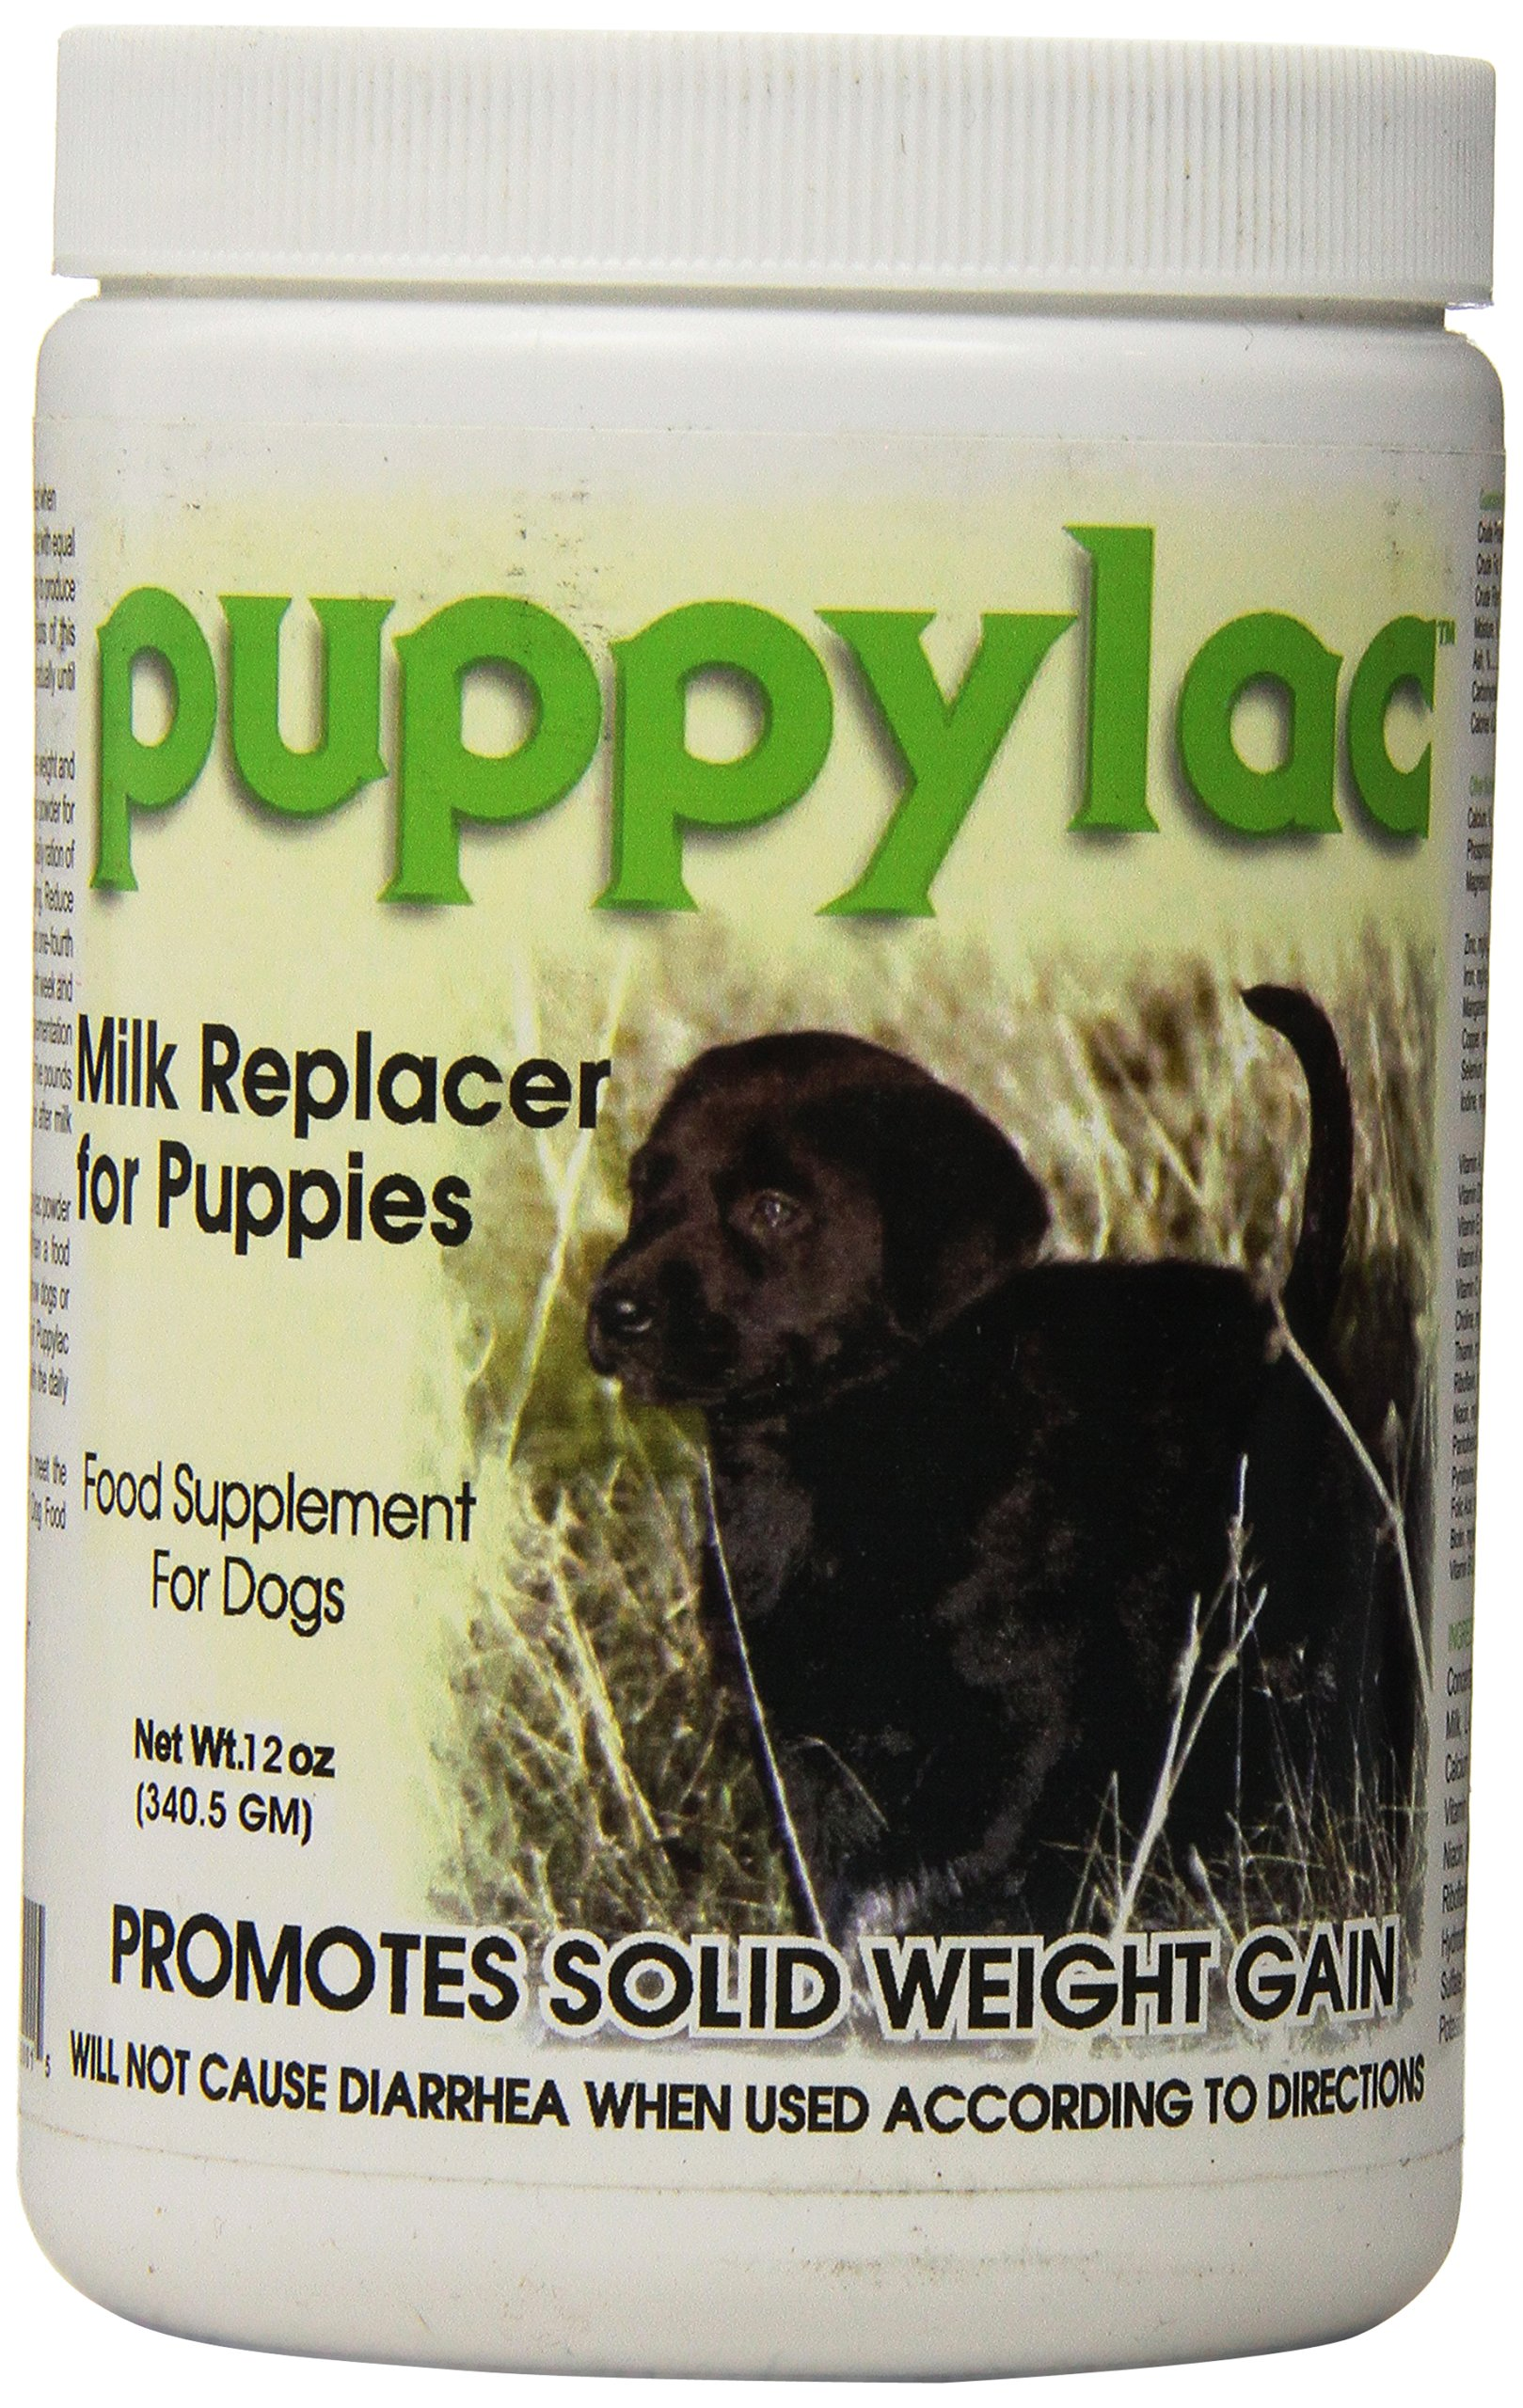 Kenic Puppylac Milk Replacer Puppies, 12-Ounce